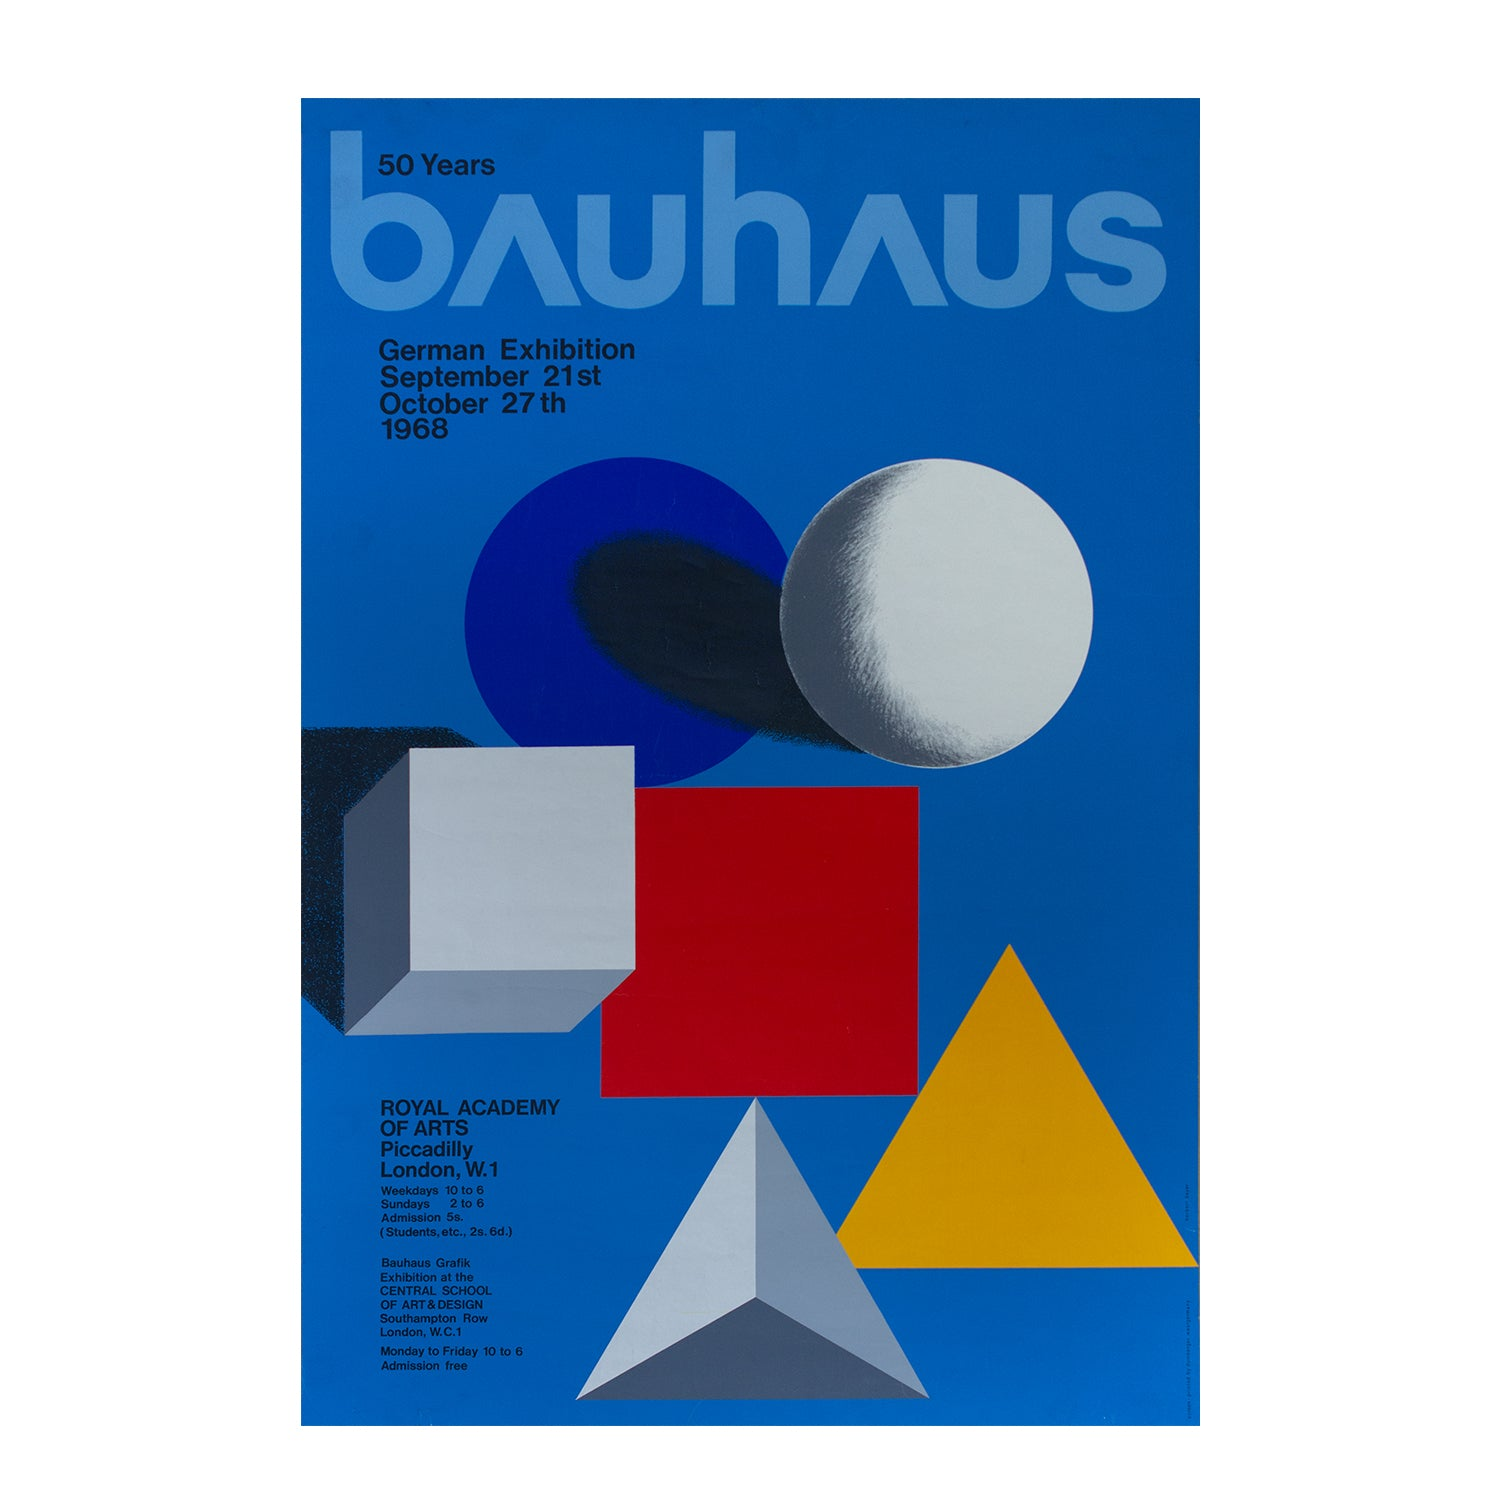 50 Years of Bauhaus. Exhibition